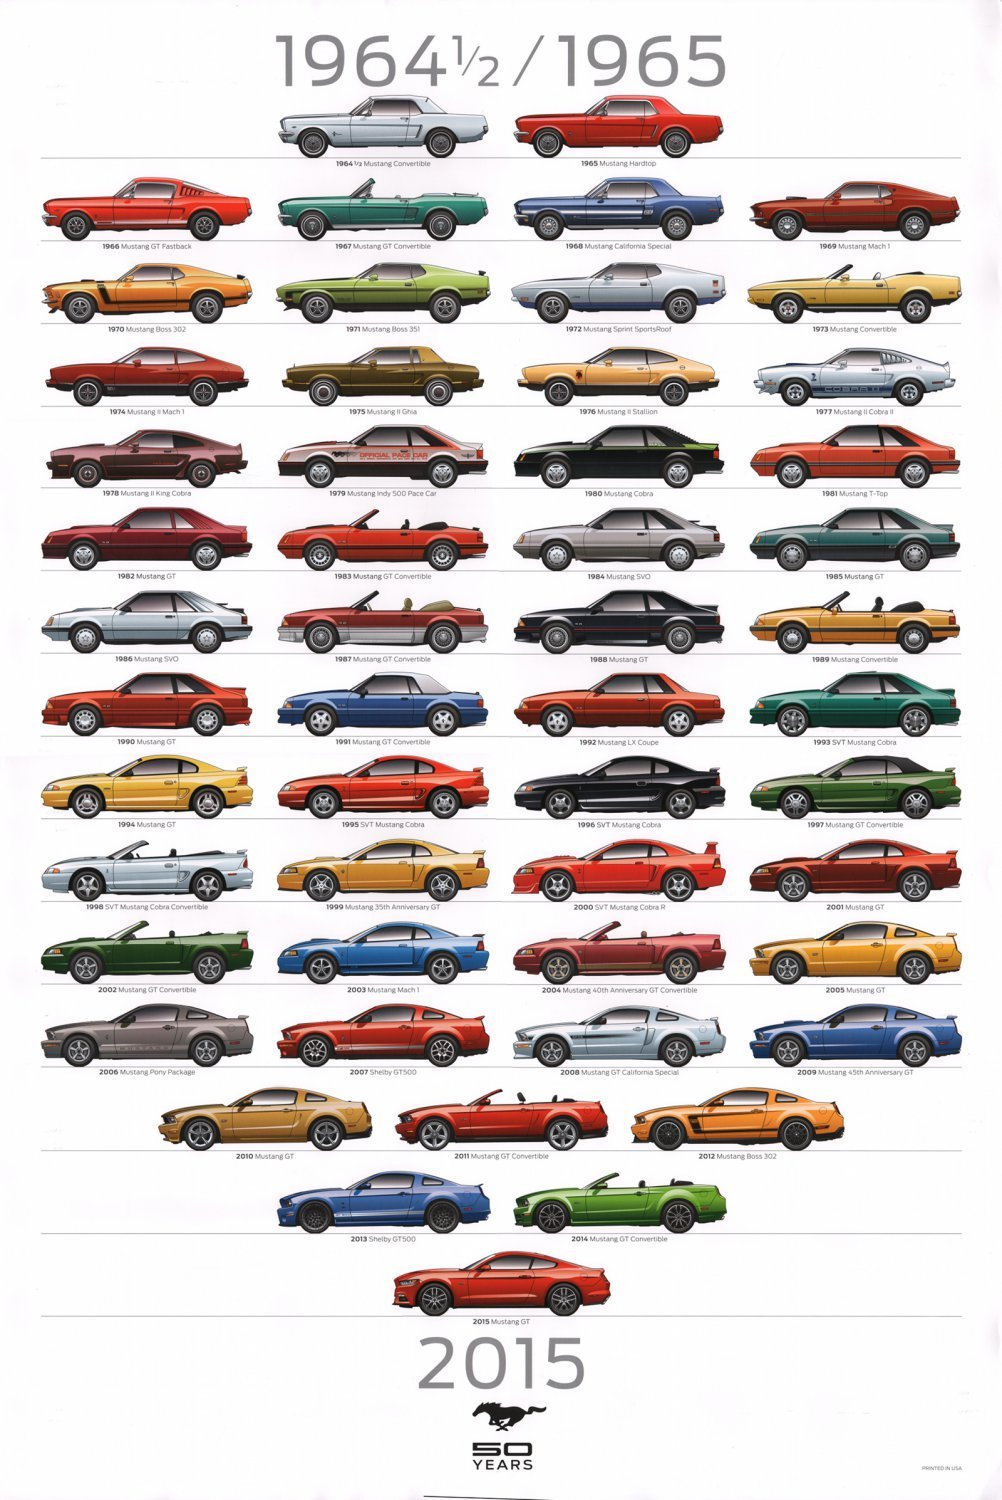 Ford Mustang 50th Anniversary Edition Chart 18x28 inches Canvas Print